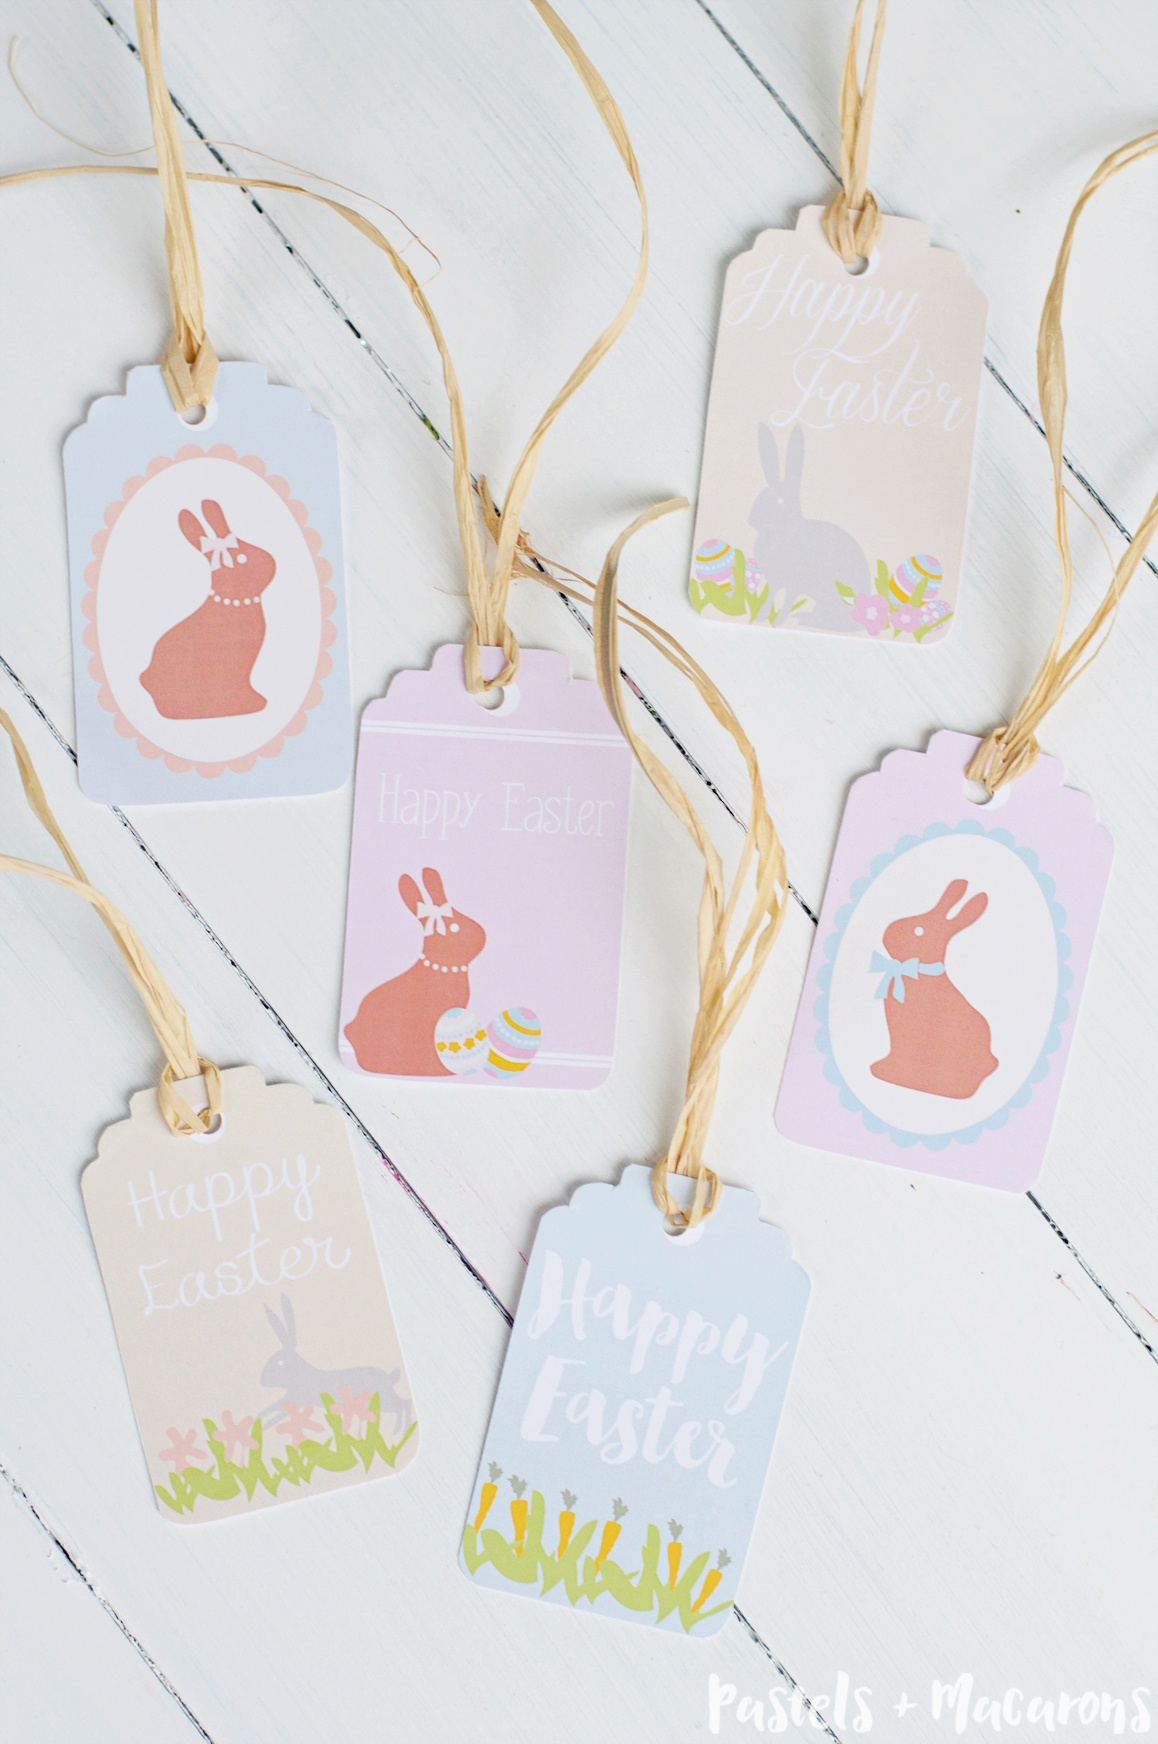 Free Printable Easter Gift Tags - Free Printable Easter Images